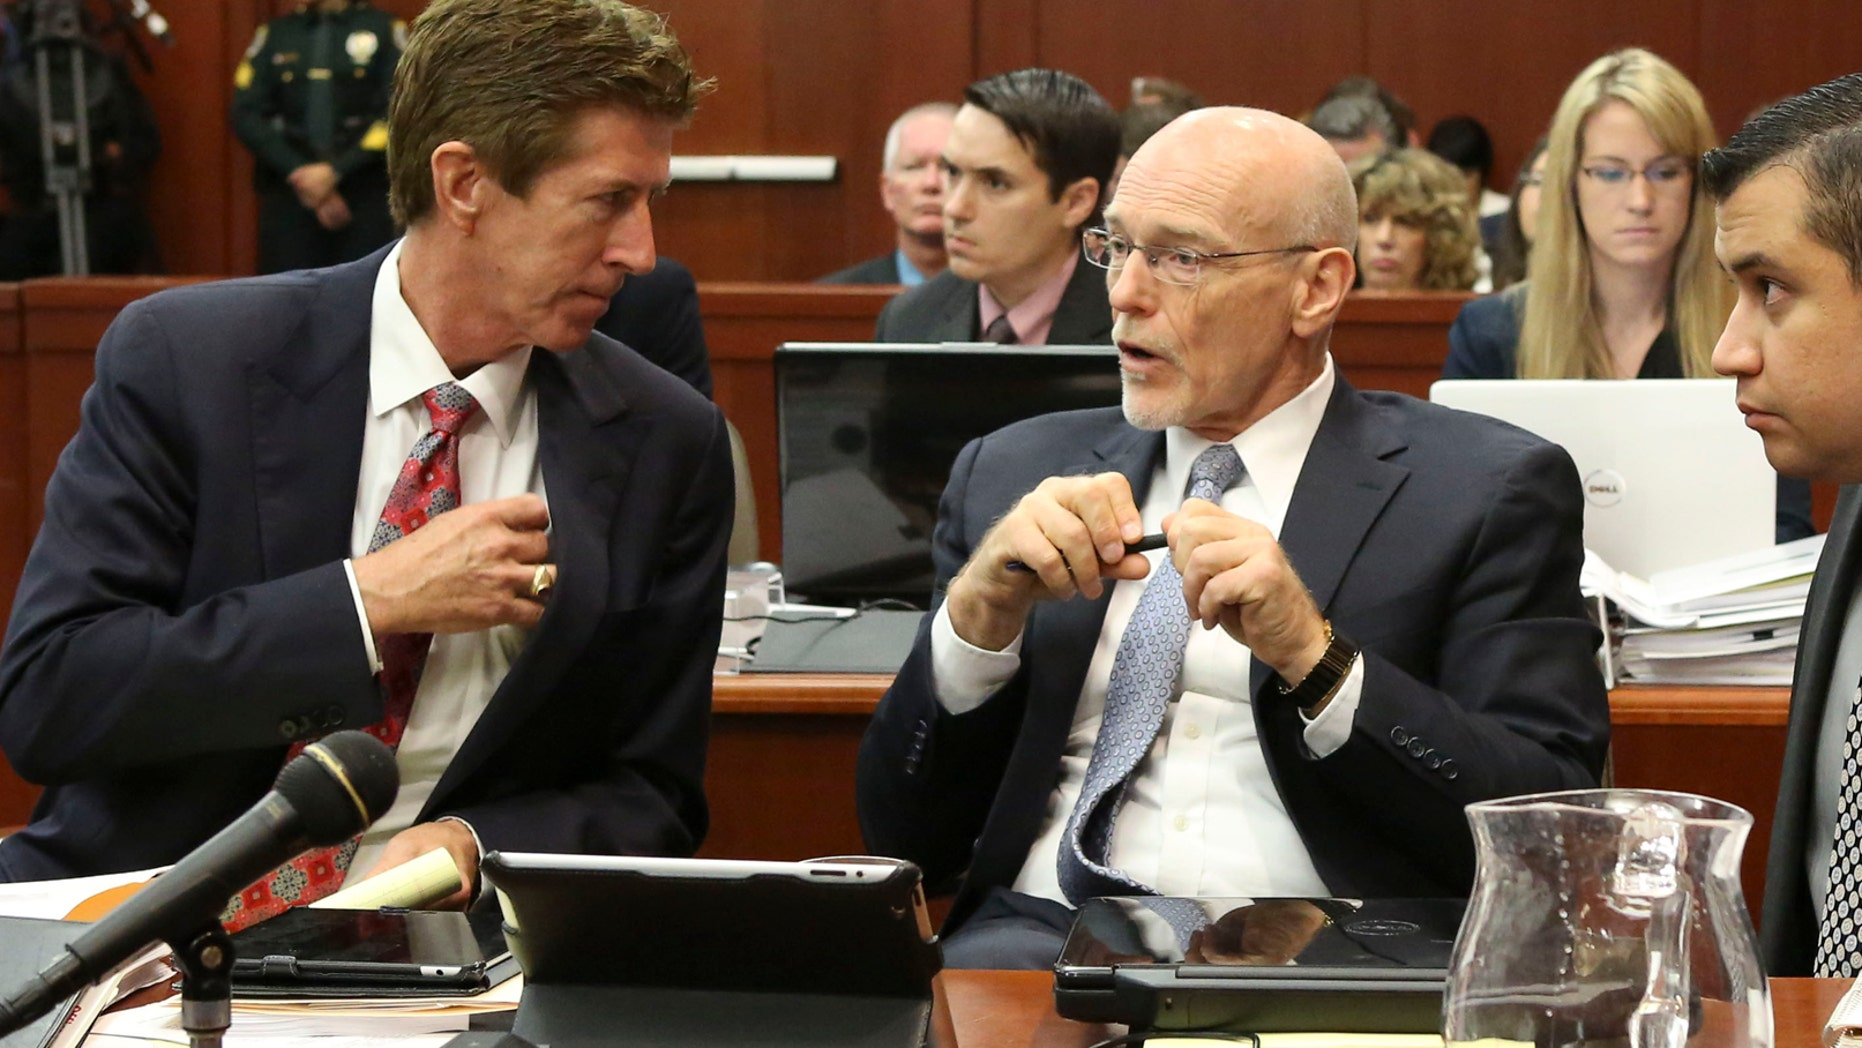 George Zimmerman listens to his defense counsel Mark O'Mara, left, and Don West, center during his trial in Sanford, Fla. July 10, 2013.